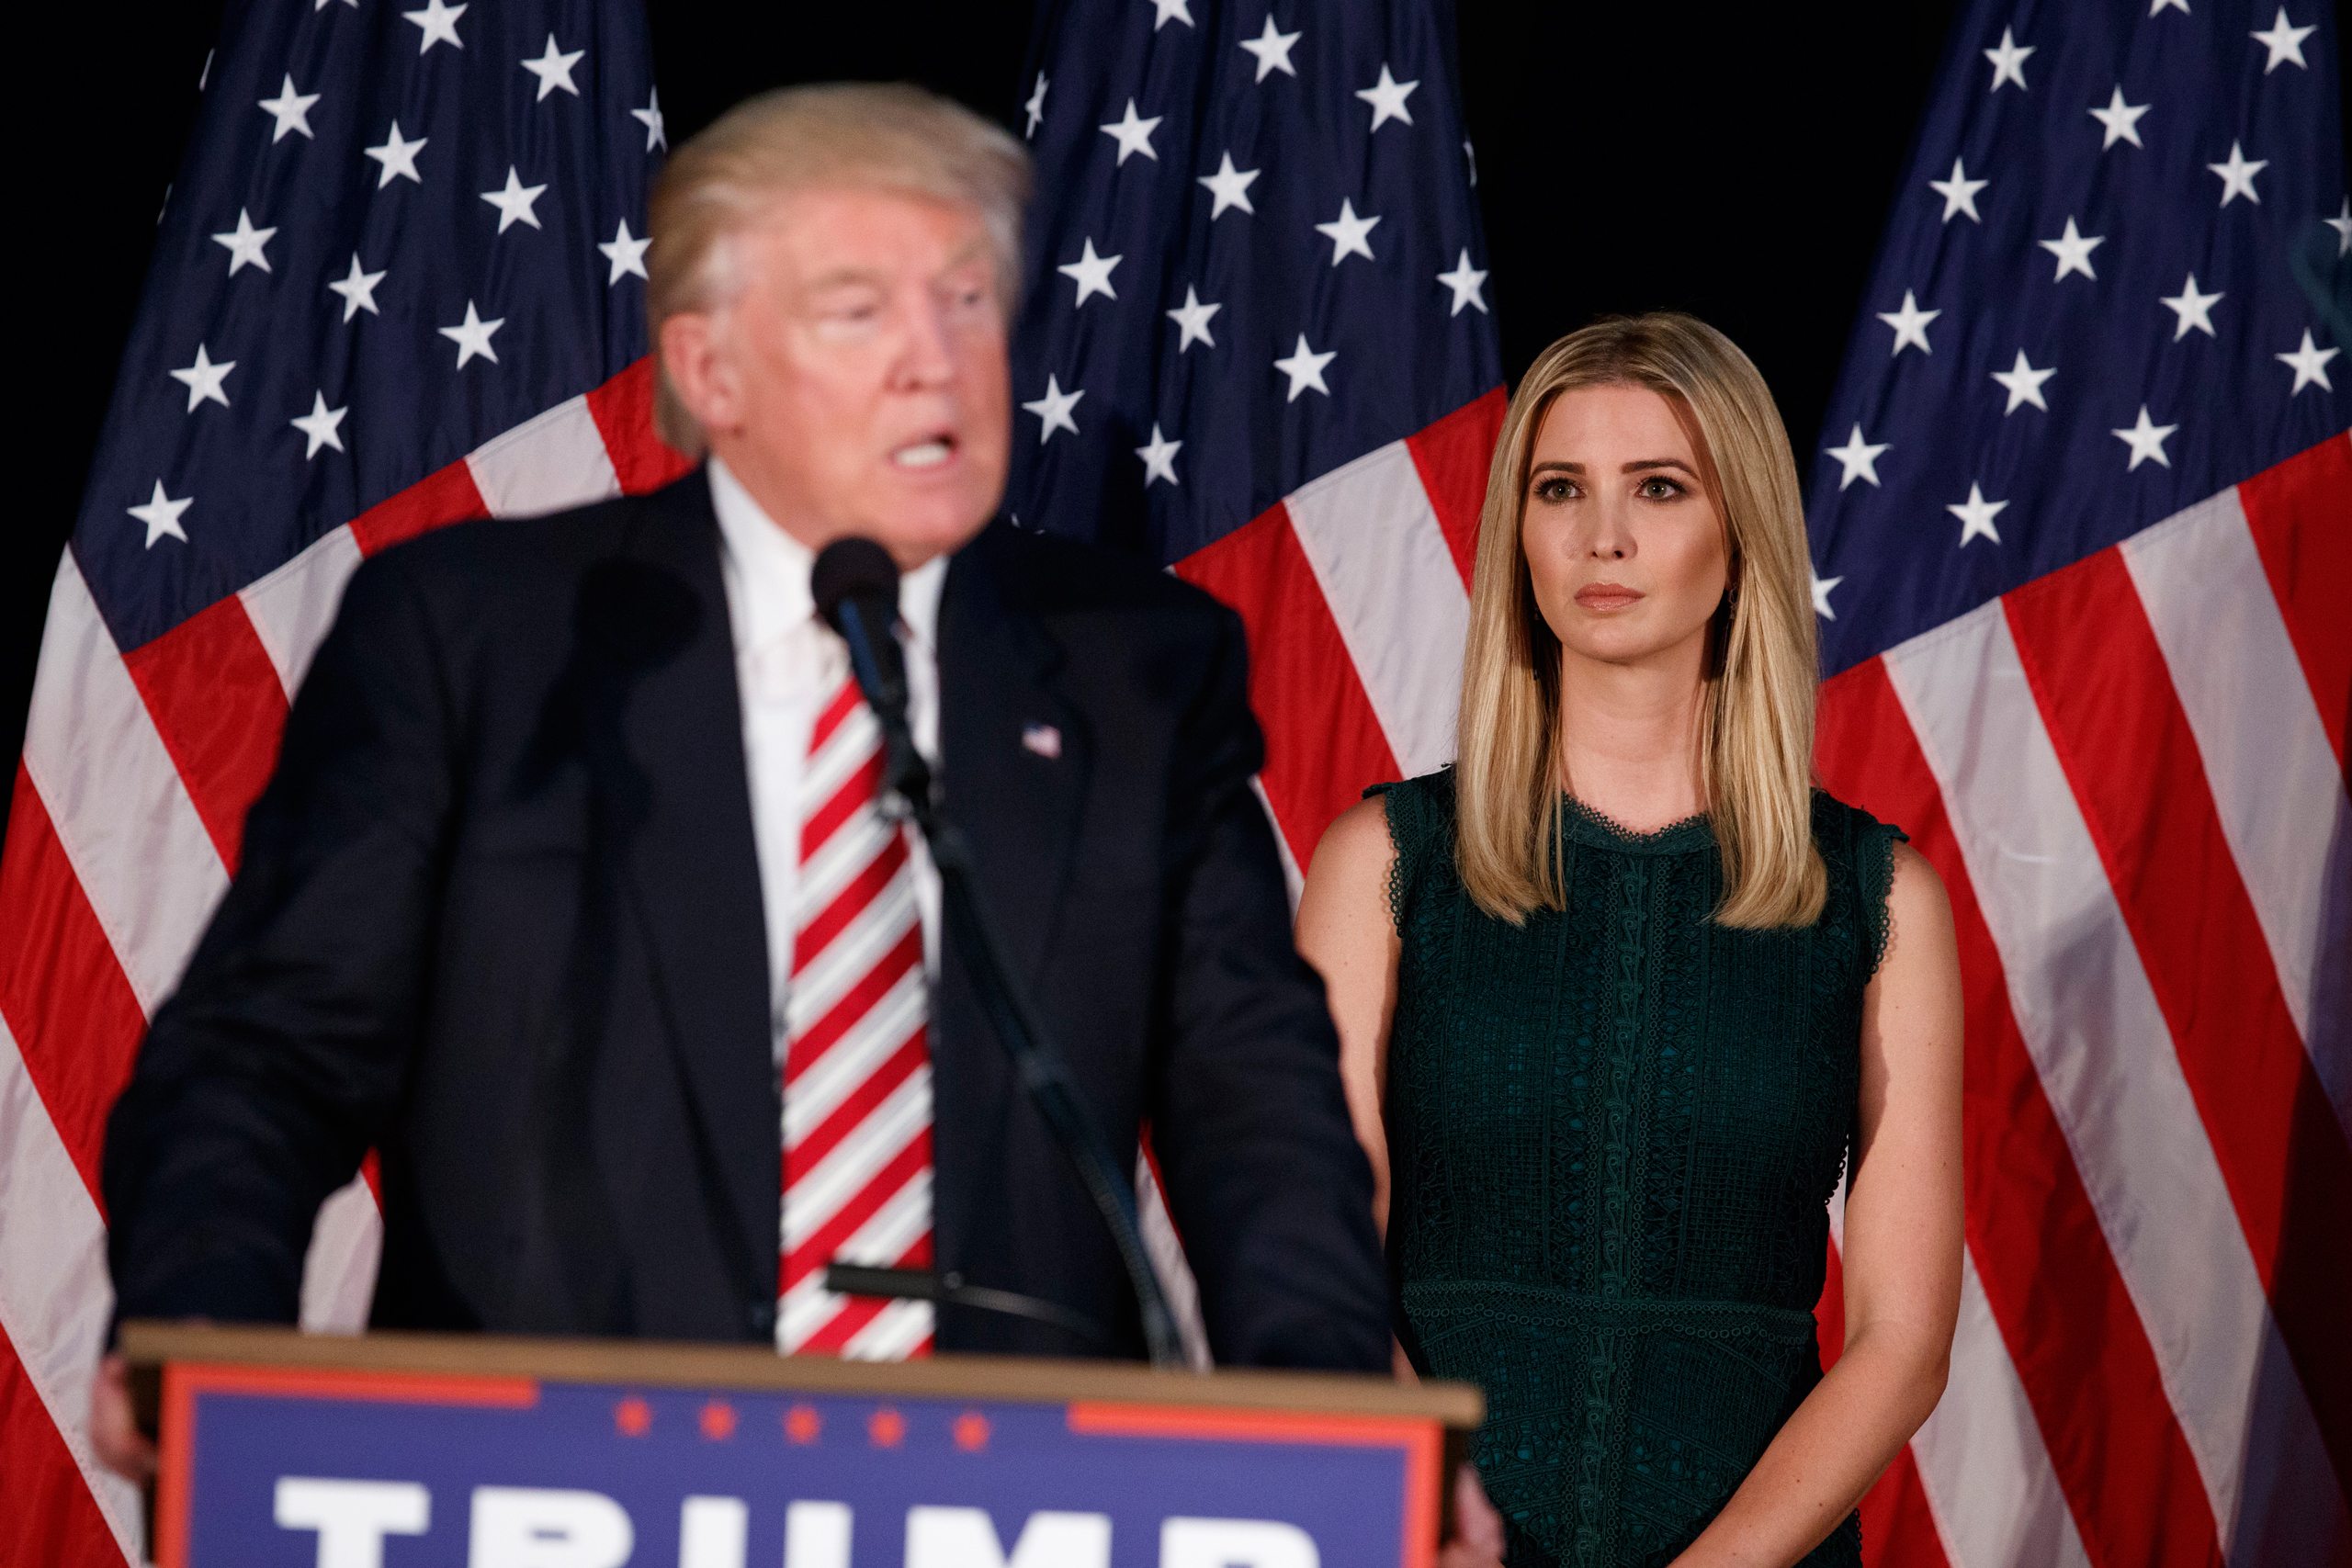 Ivanka Trump, right, looks on as her father, Republican presidential candidate Donald Trump, delivers a policy speech on child care in Aston, Penn., on Sept. 13, 2016.